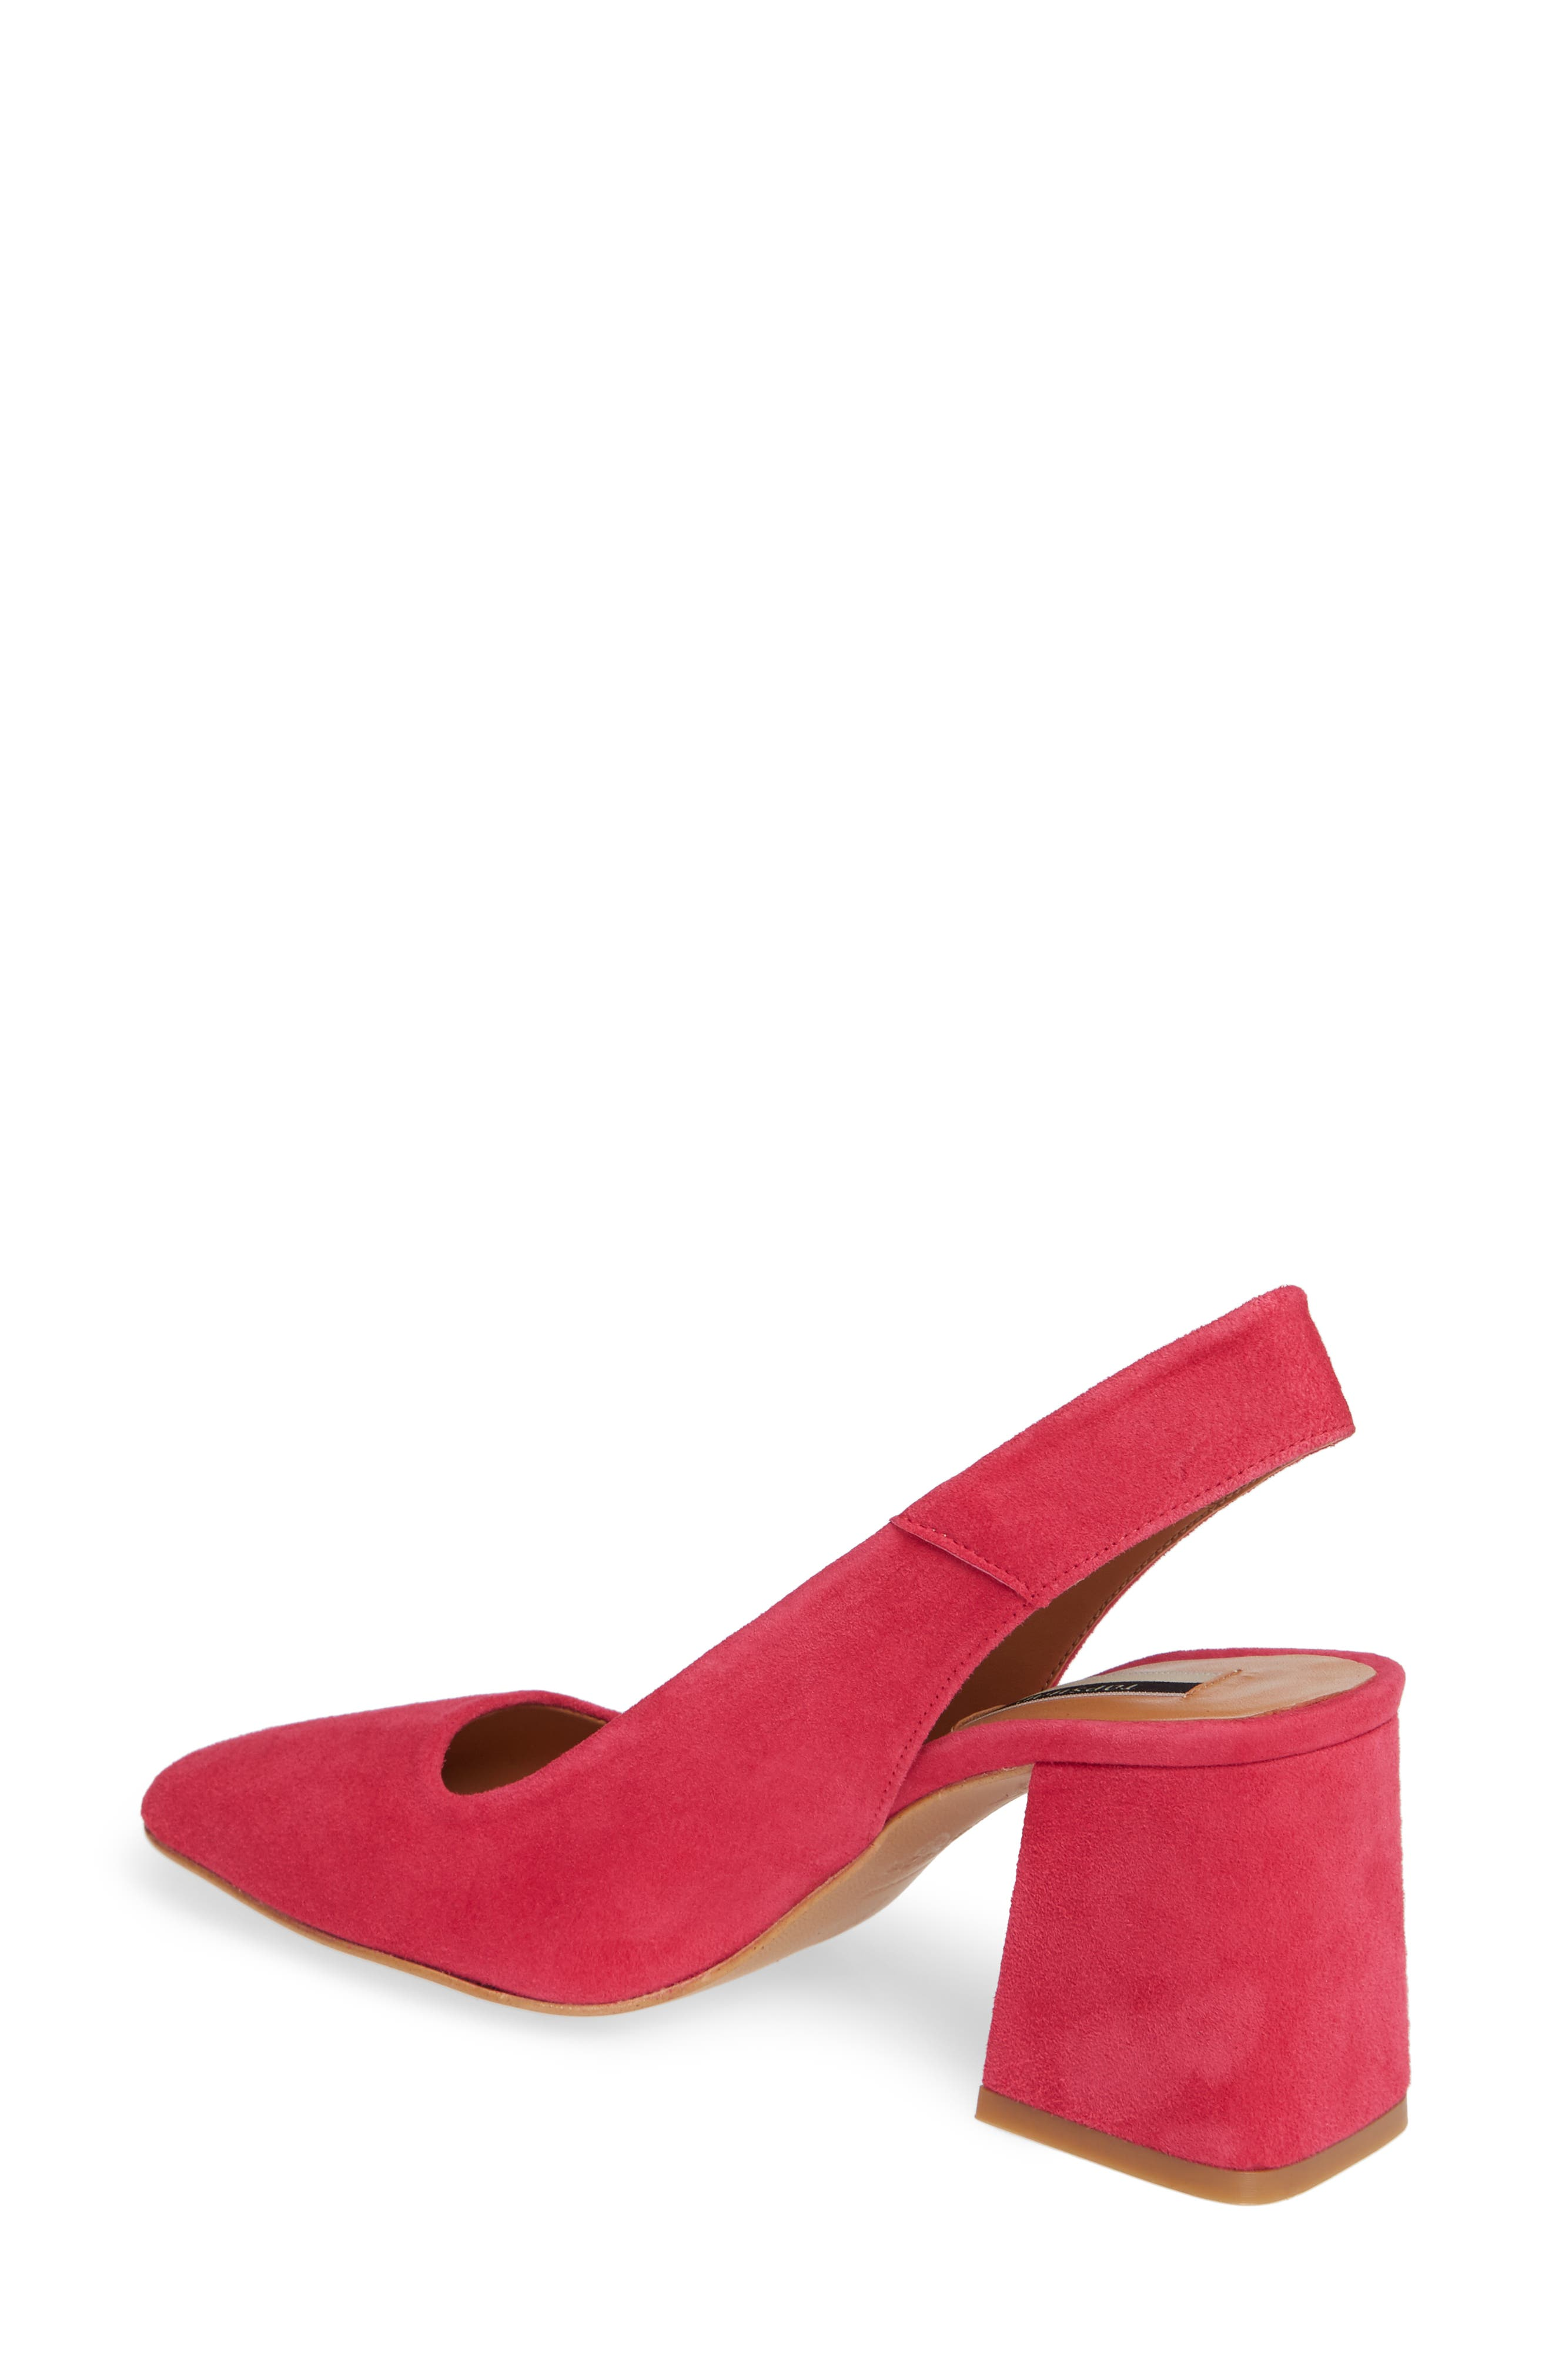 Gainor Block Heel Slingback Pump,                             Alternate thumbnail 2, color,                             PINK